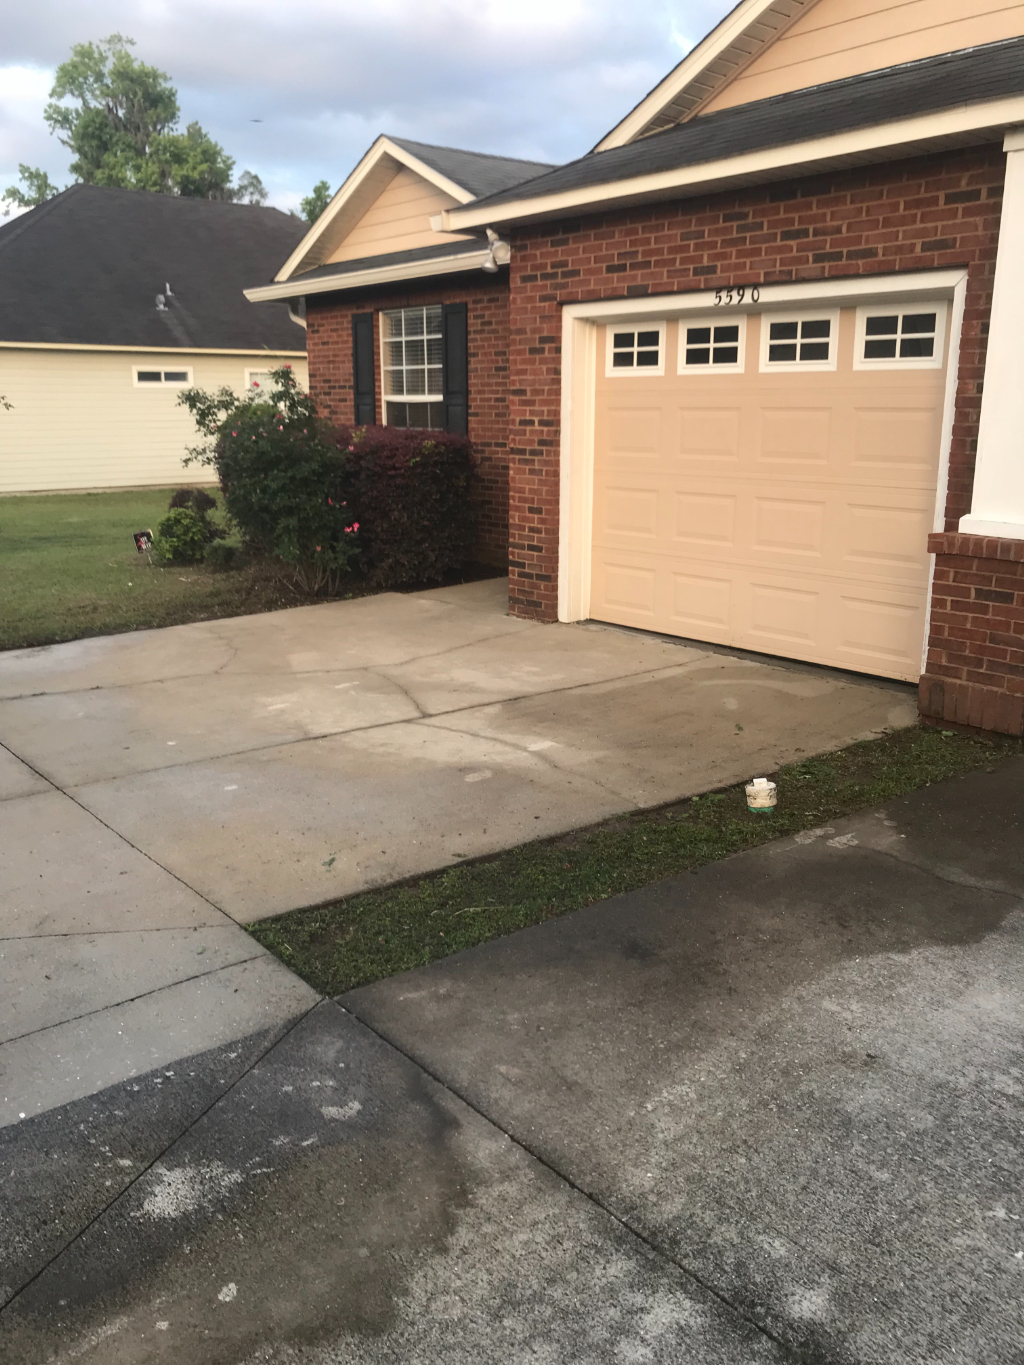 Yard mowing company in Tallahassee, FL, 32303